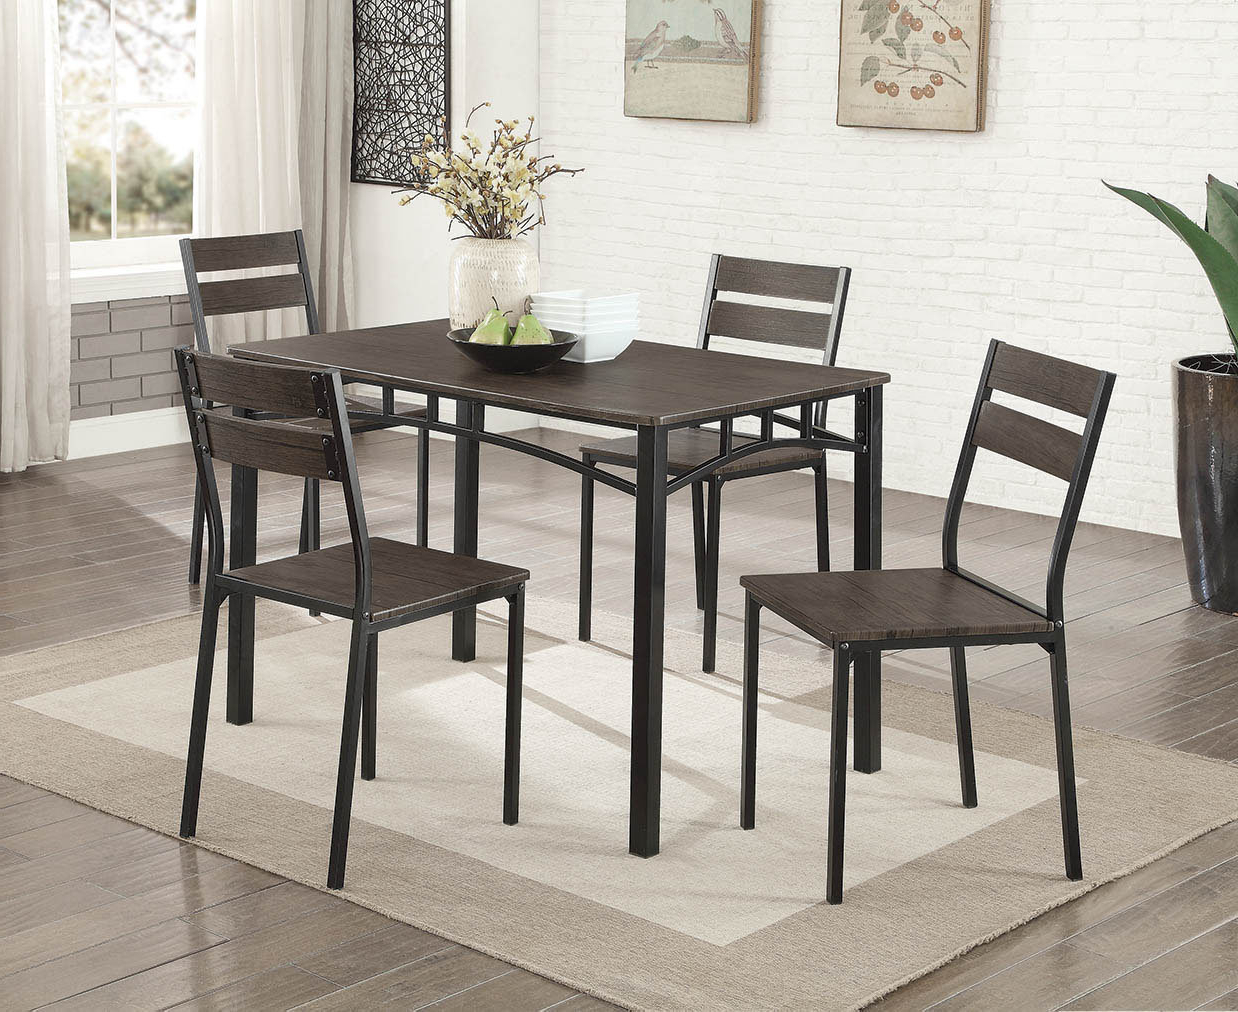 Wayfair With Casiano 5 Piece Dining Sets (View 2 of 25)